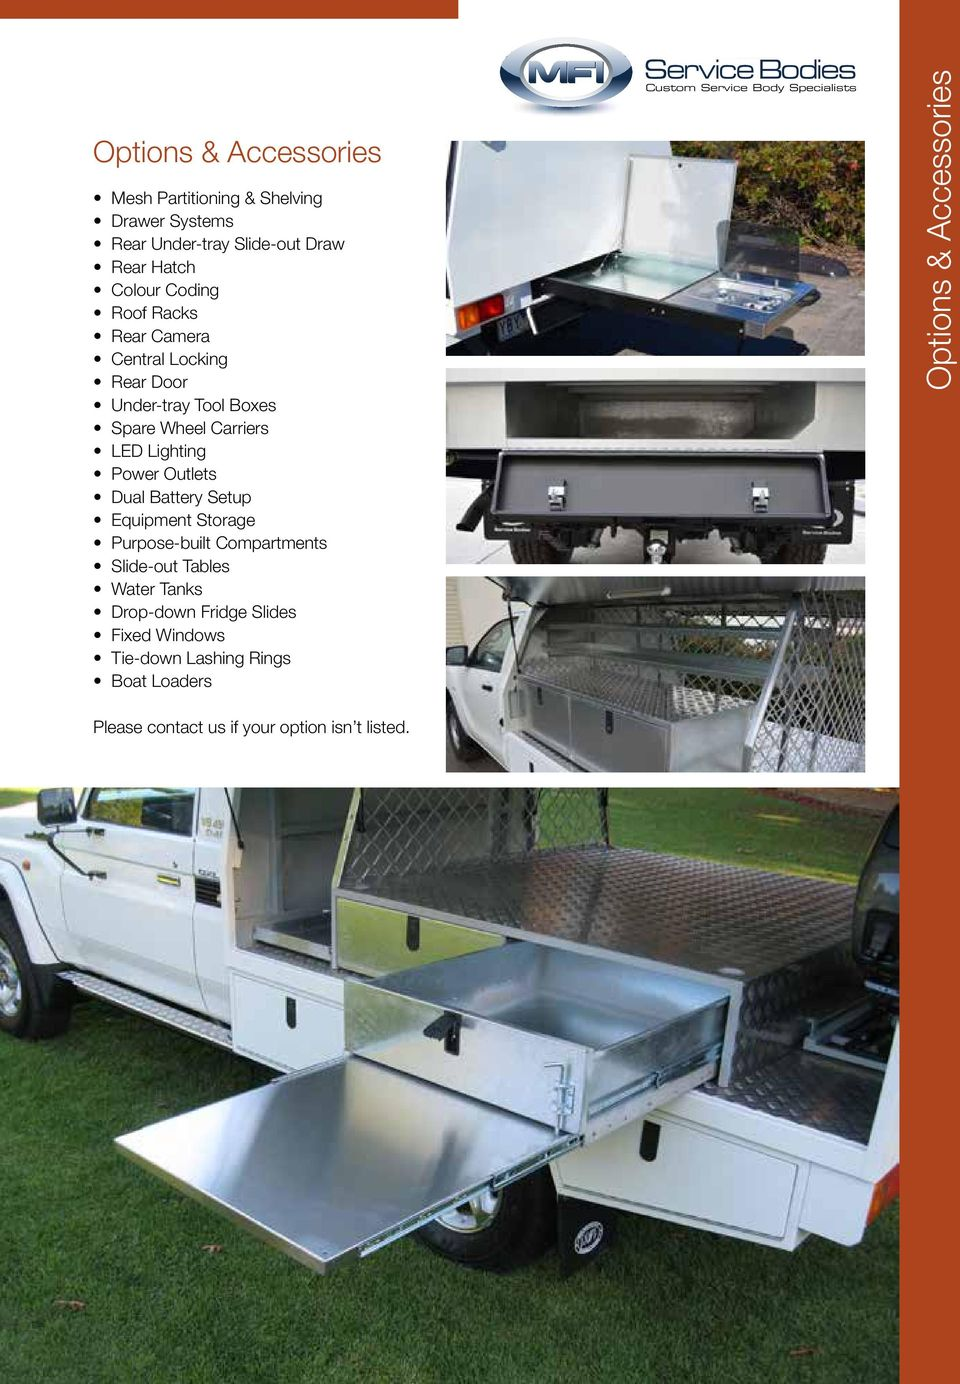 Setup Equipment Storage Purpose-built Compartments Slide-out Tables Water Tanks Drop-down Fridge Slides Fixed Windows Tie-down